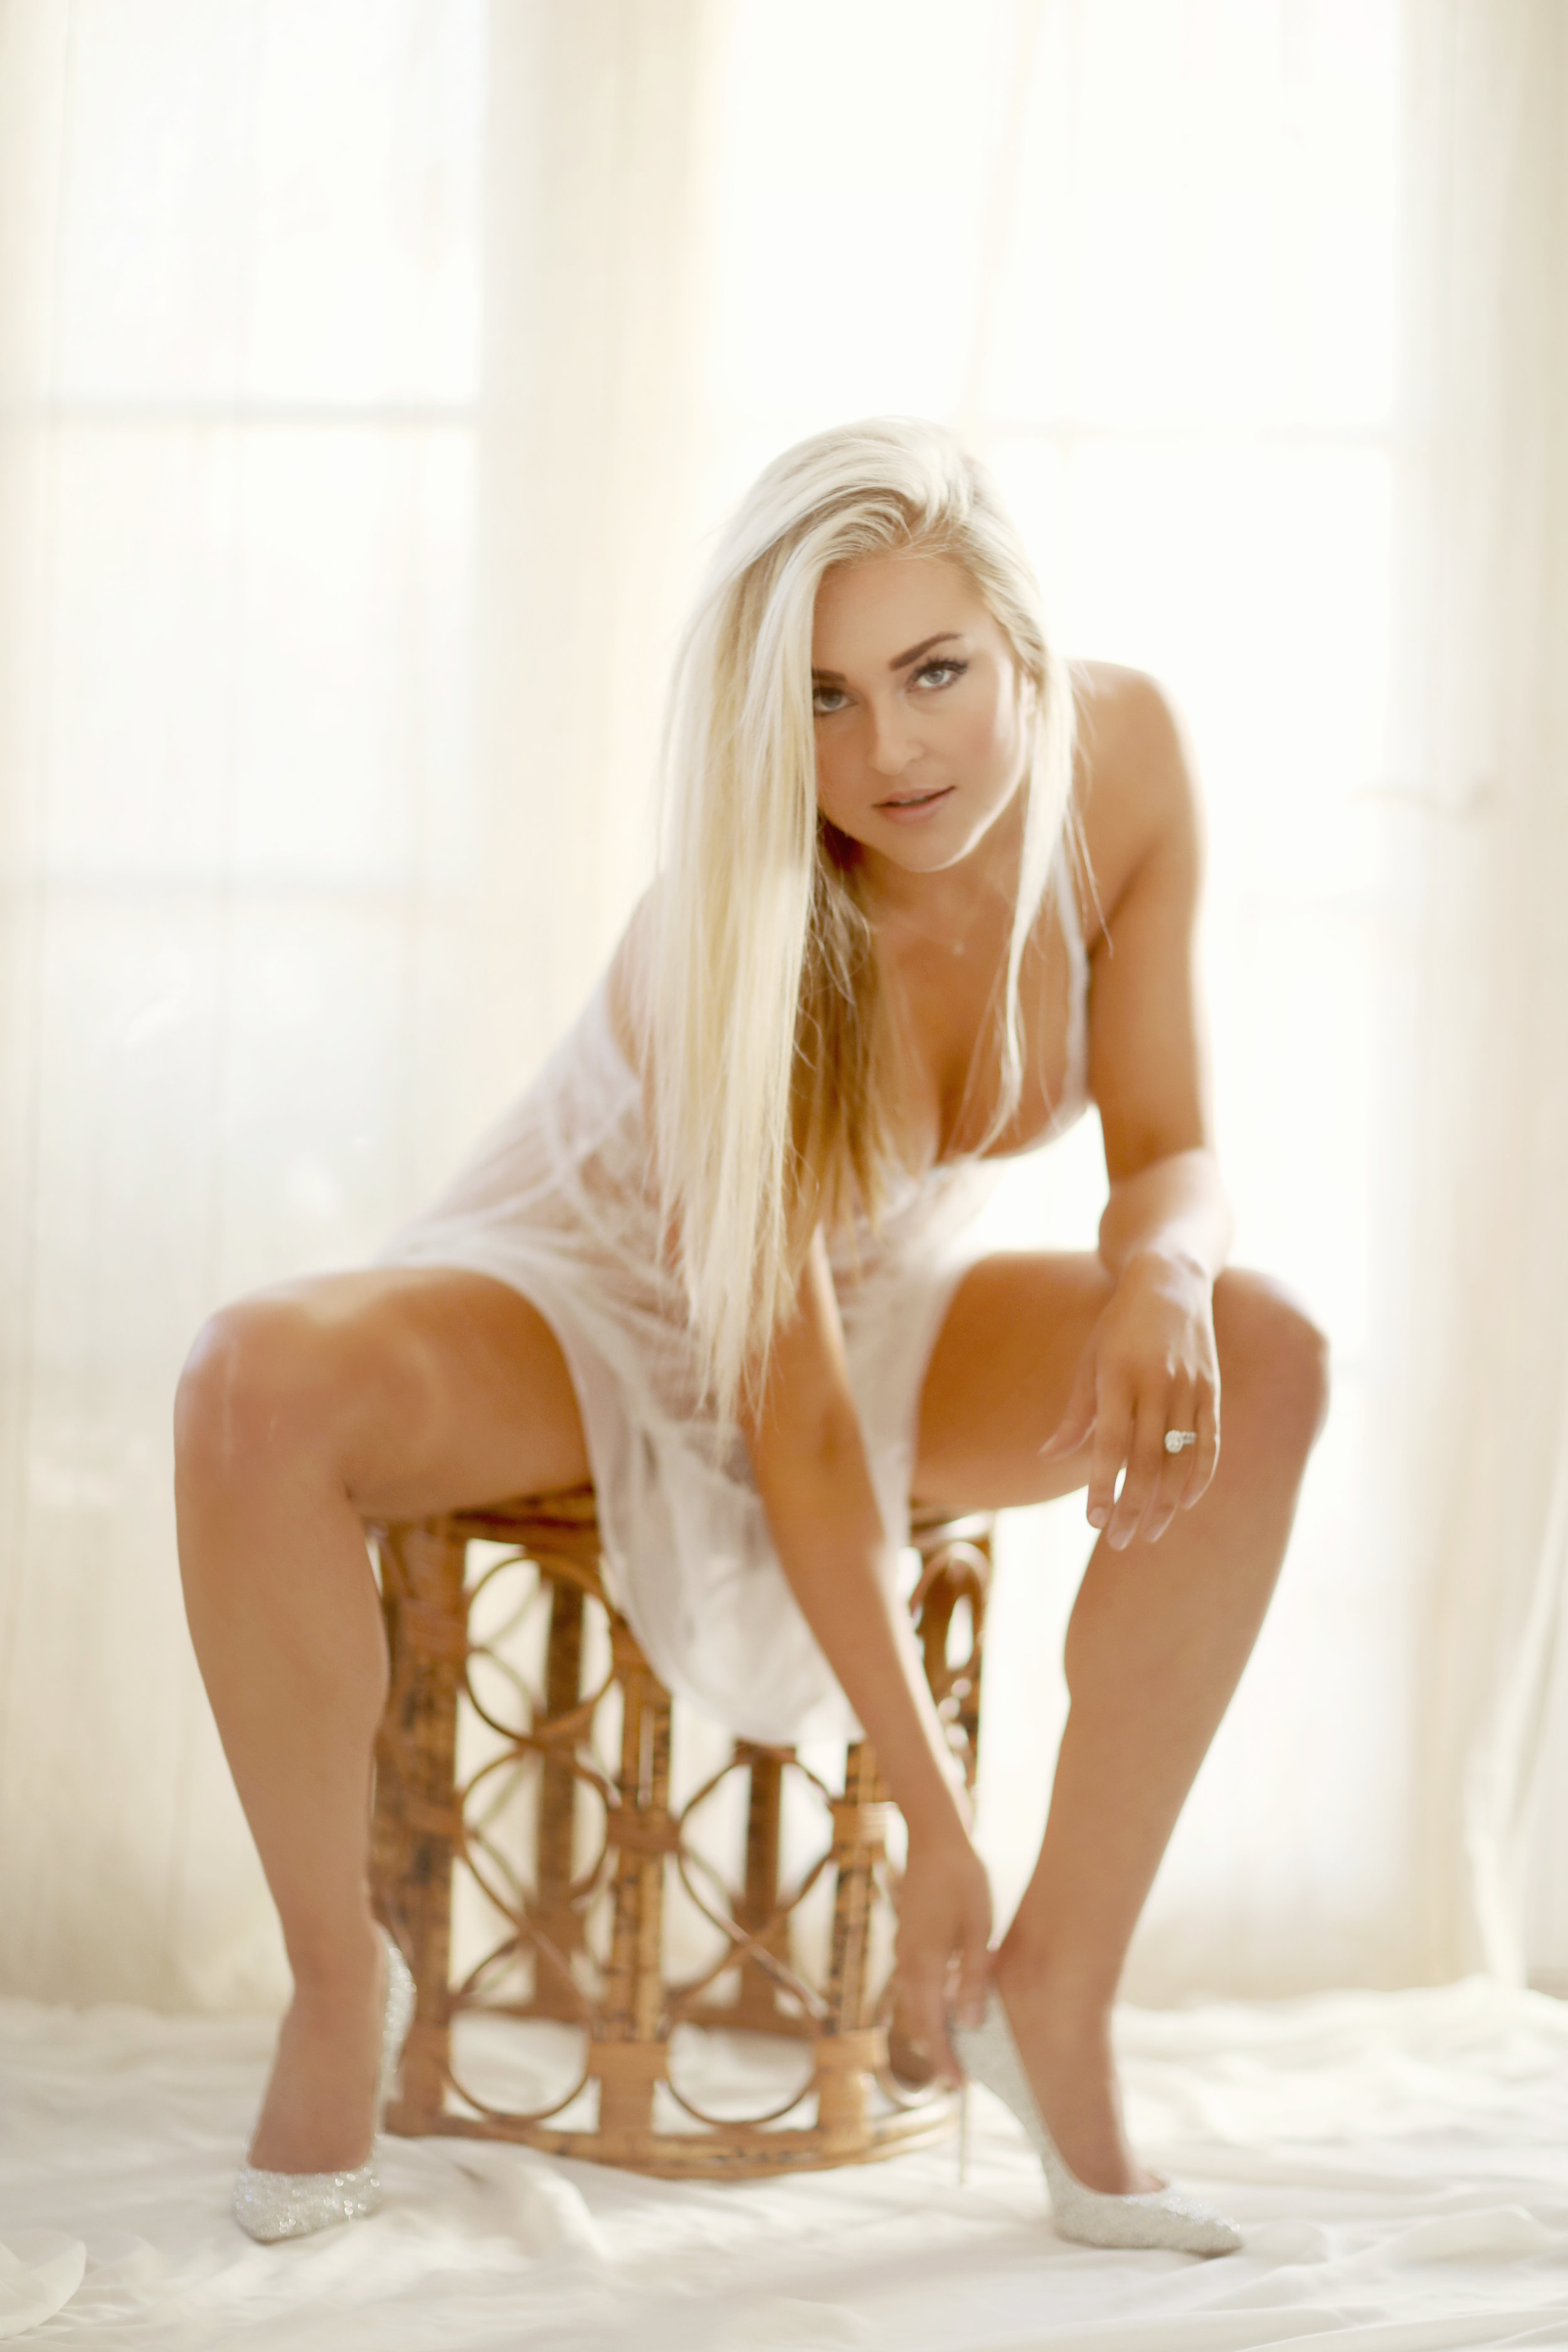 Blond long haired sexy girl sitting on a rattan stool in a boudoir photoshoot